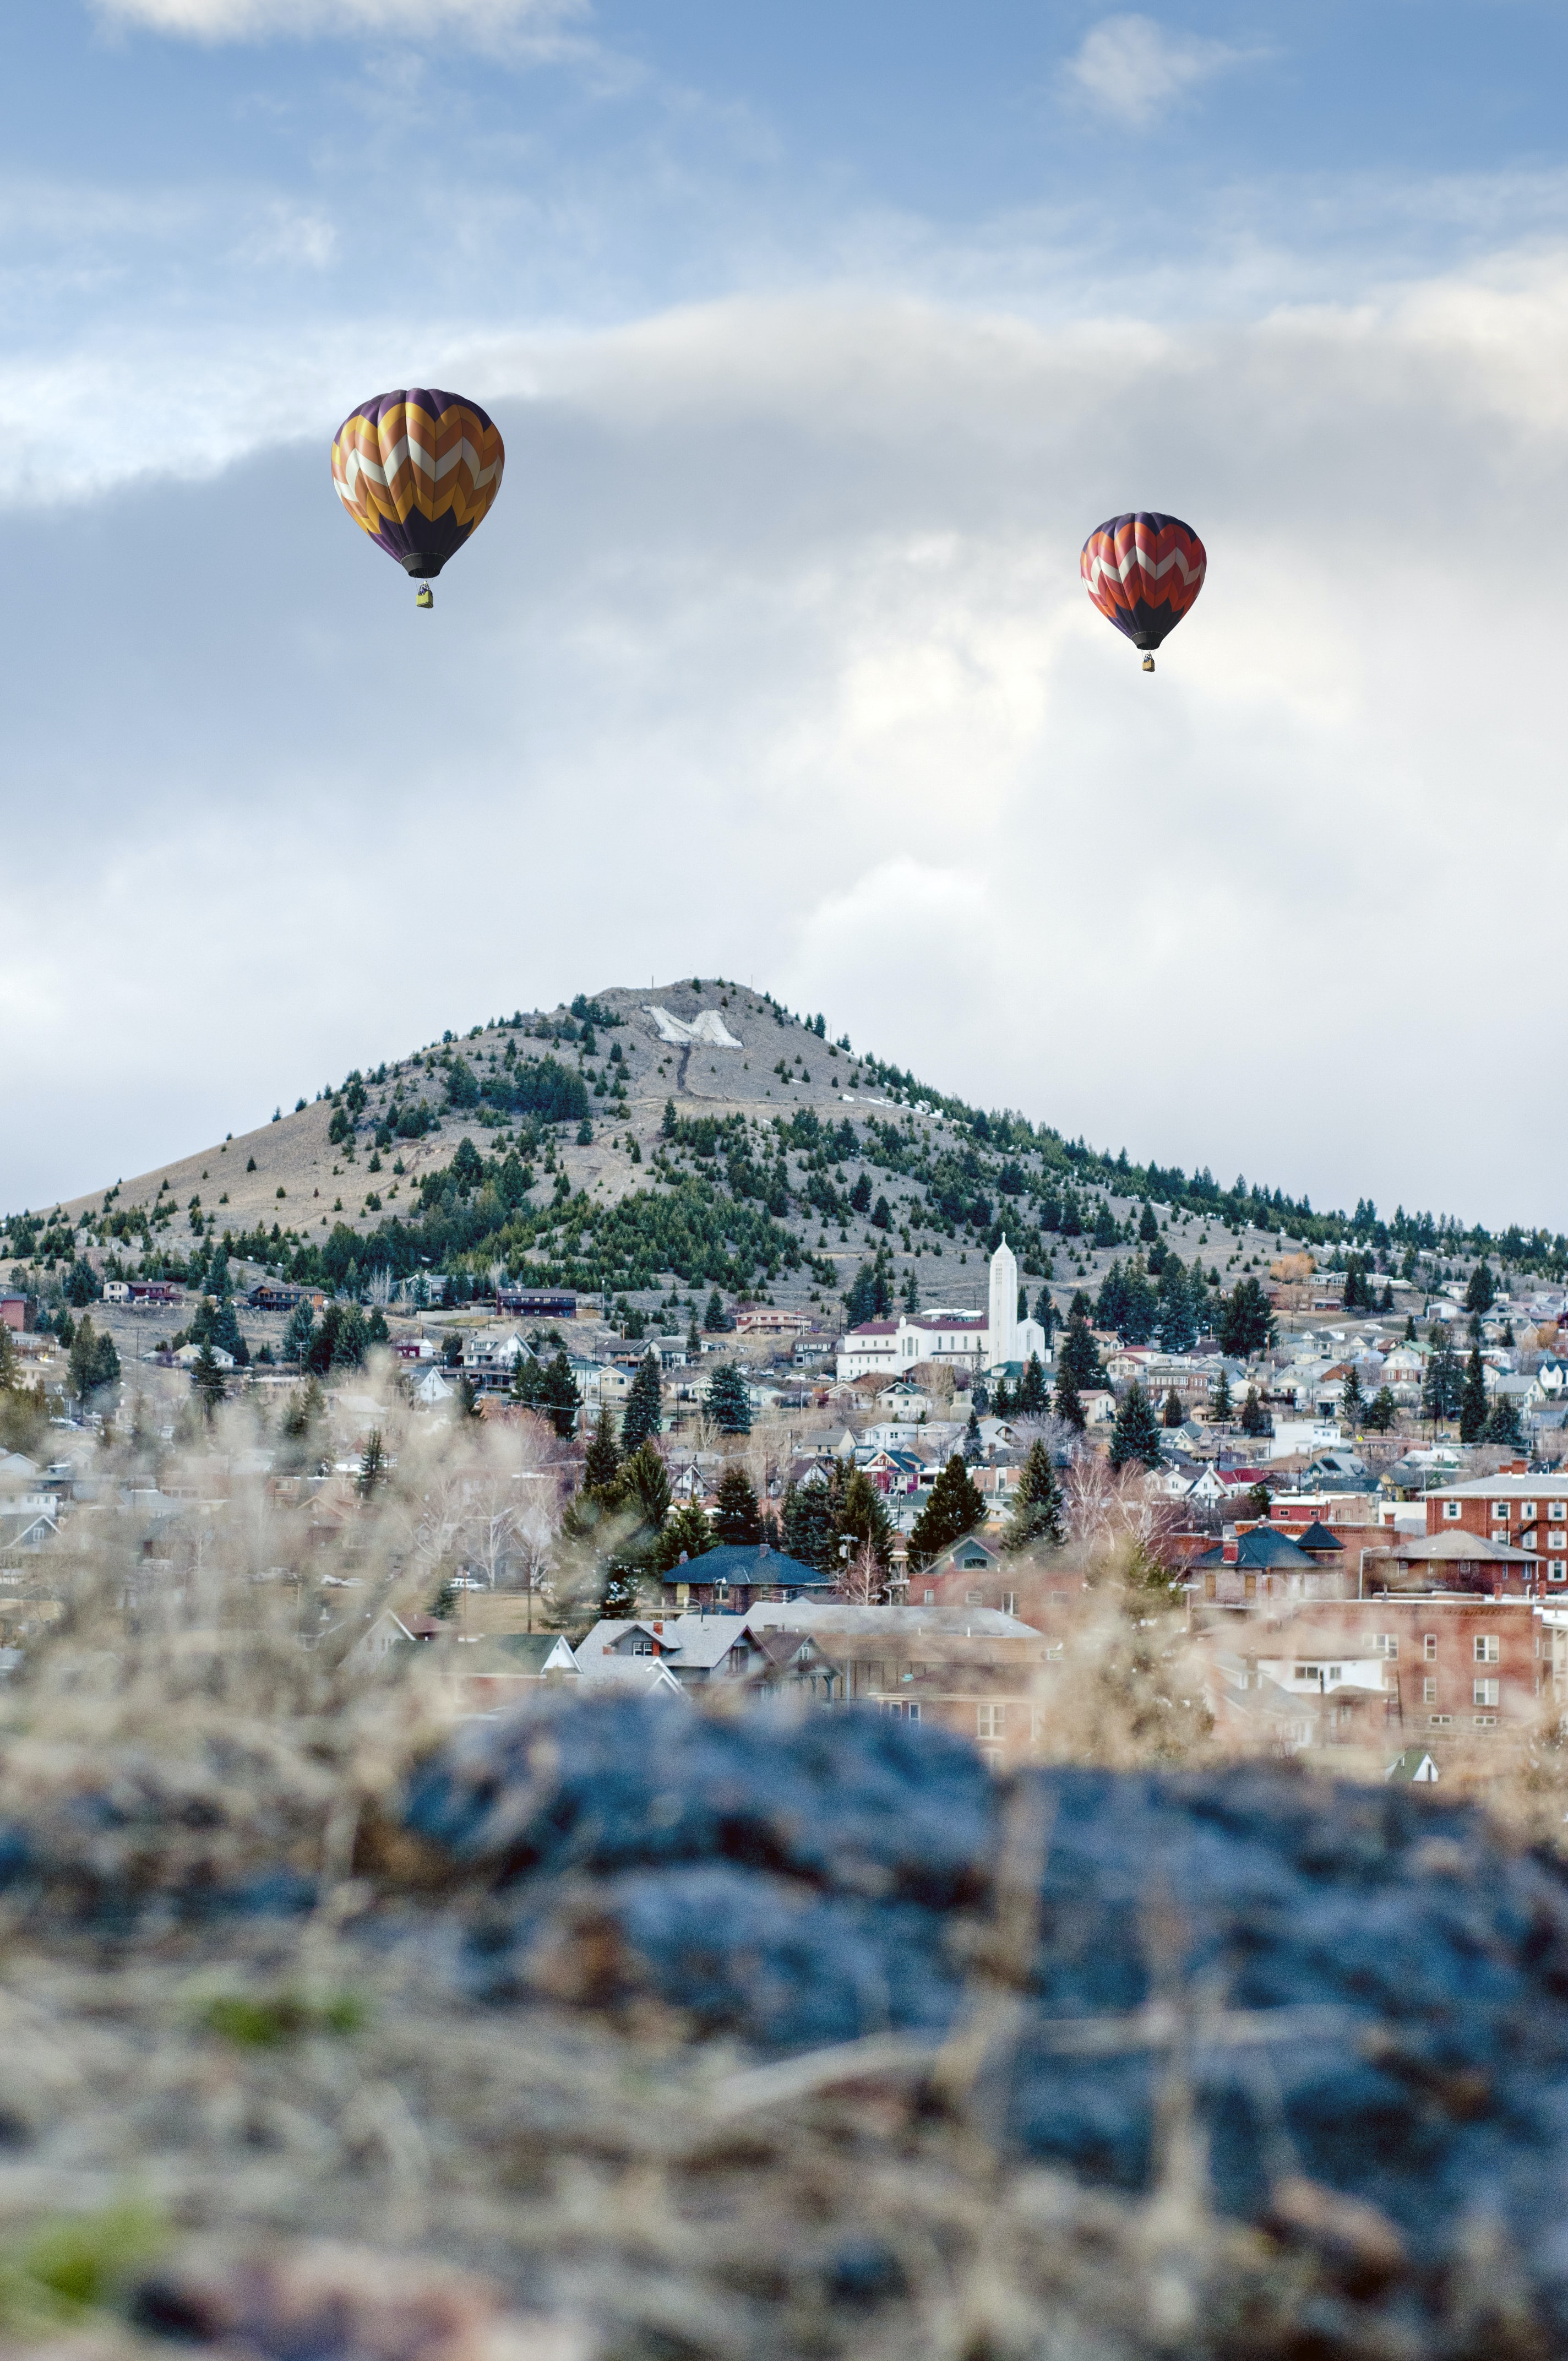 two assorted-color hot air balloons on air near mountain at daytime